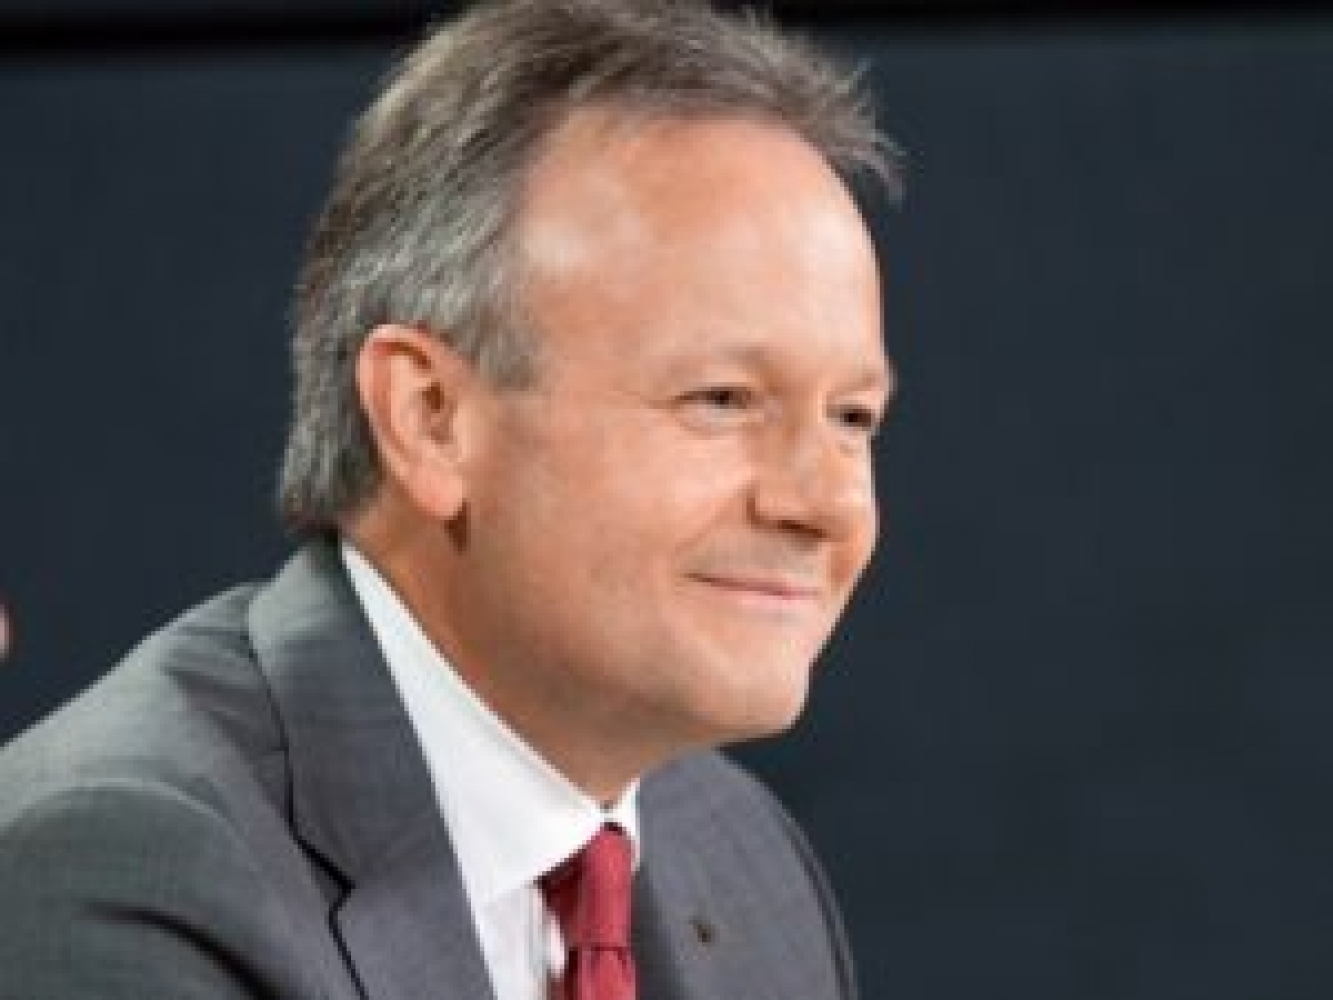 Canada needs workers and immigrants are key, says Bank of Canada governor